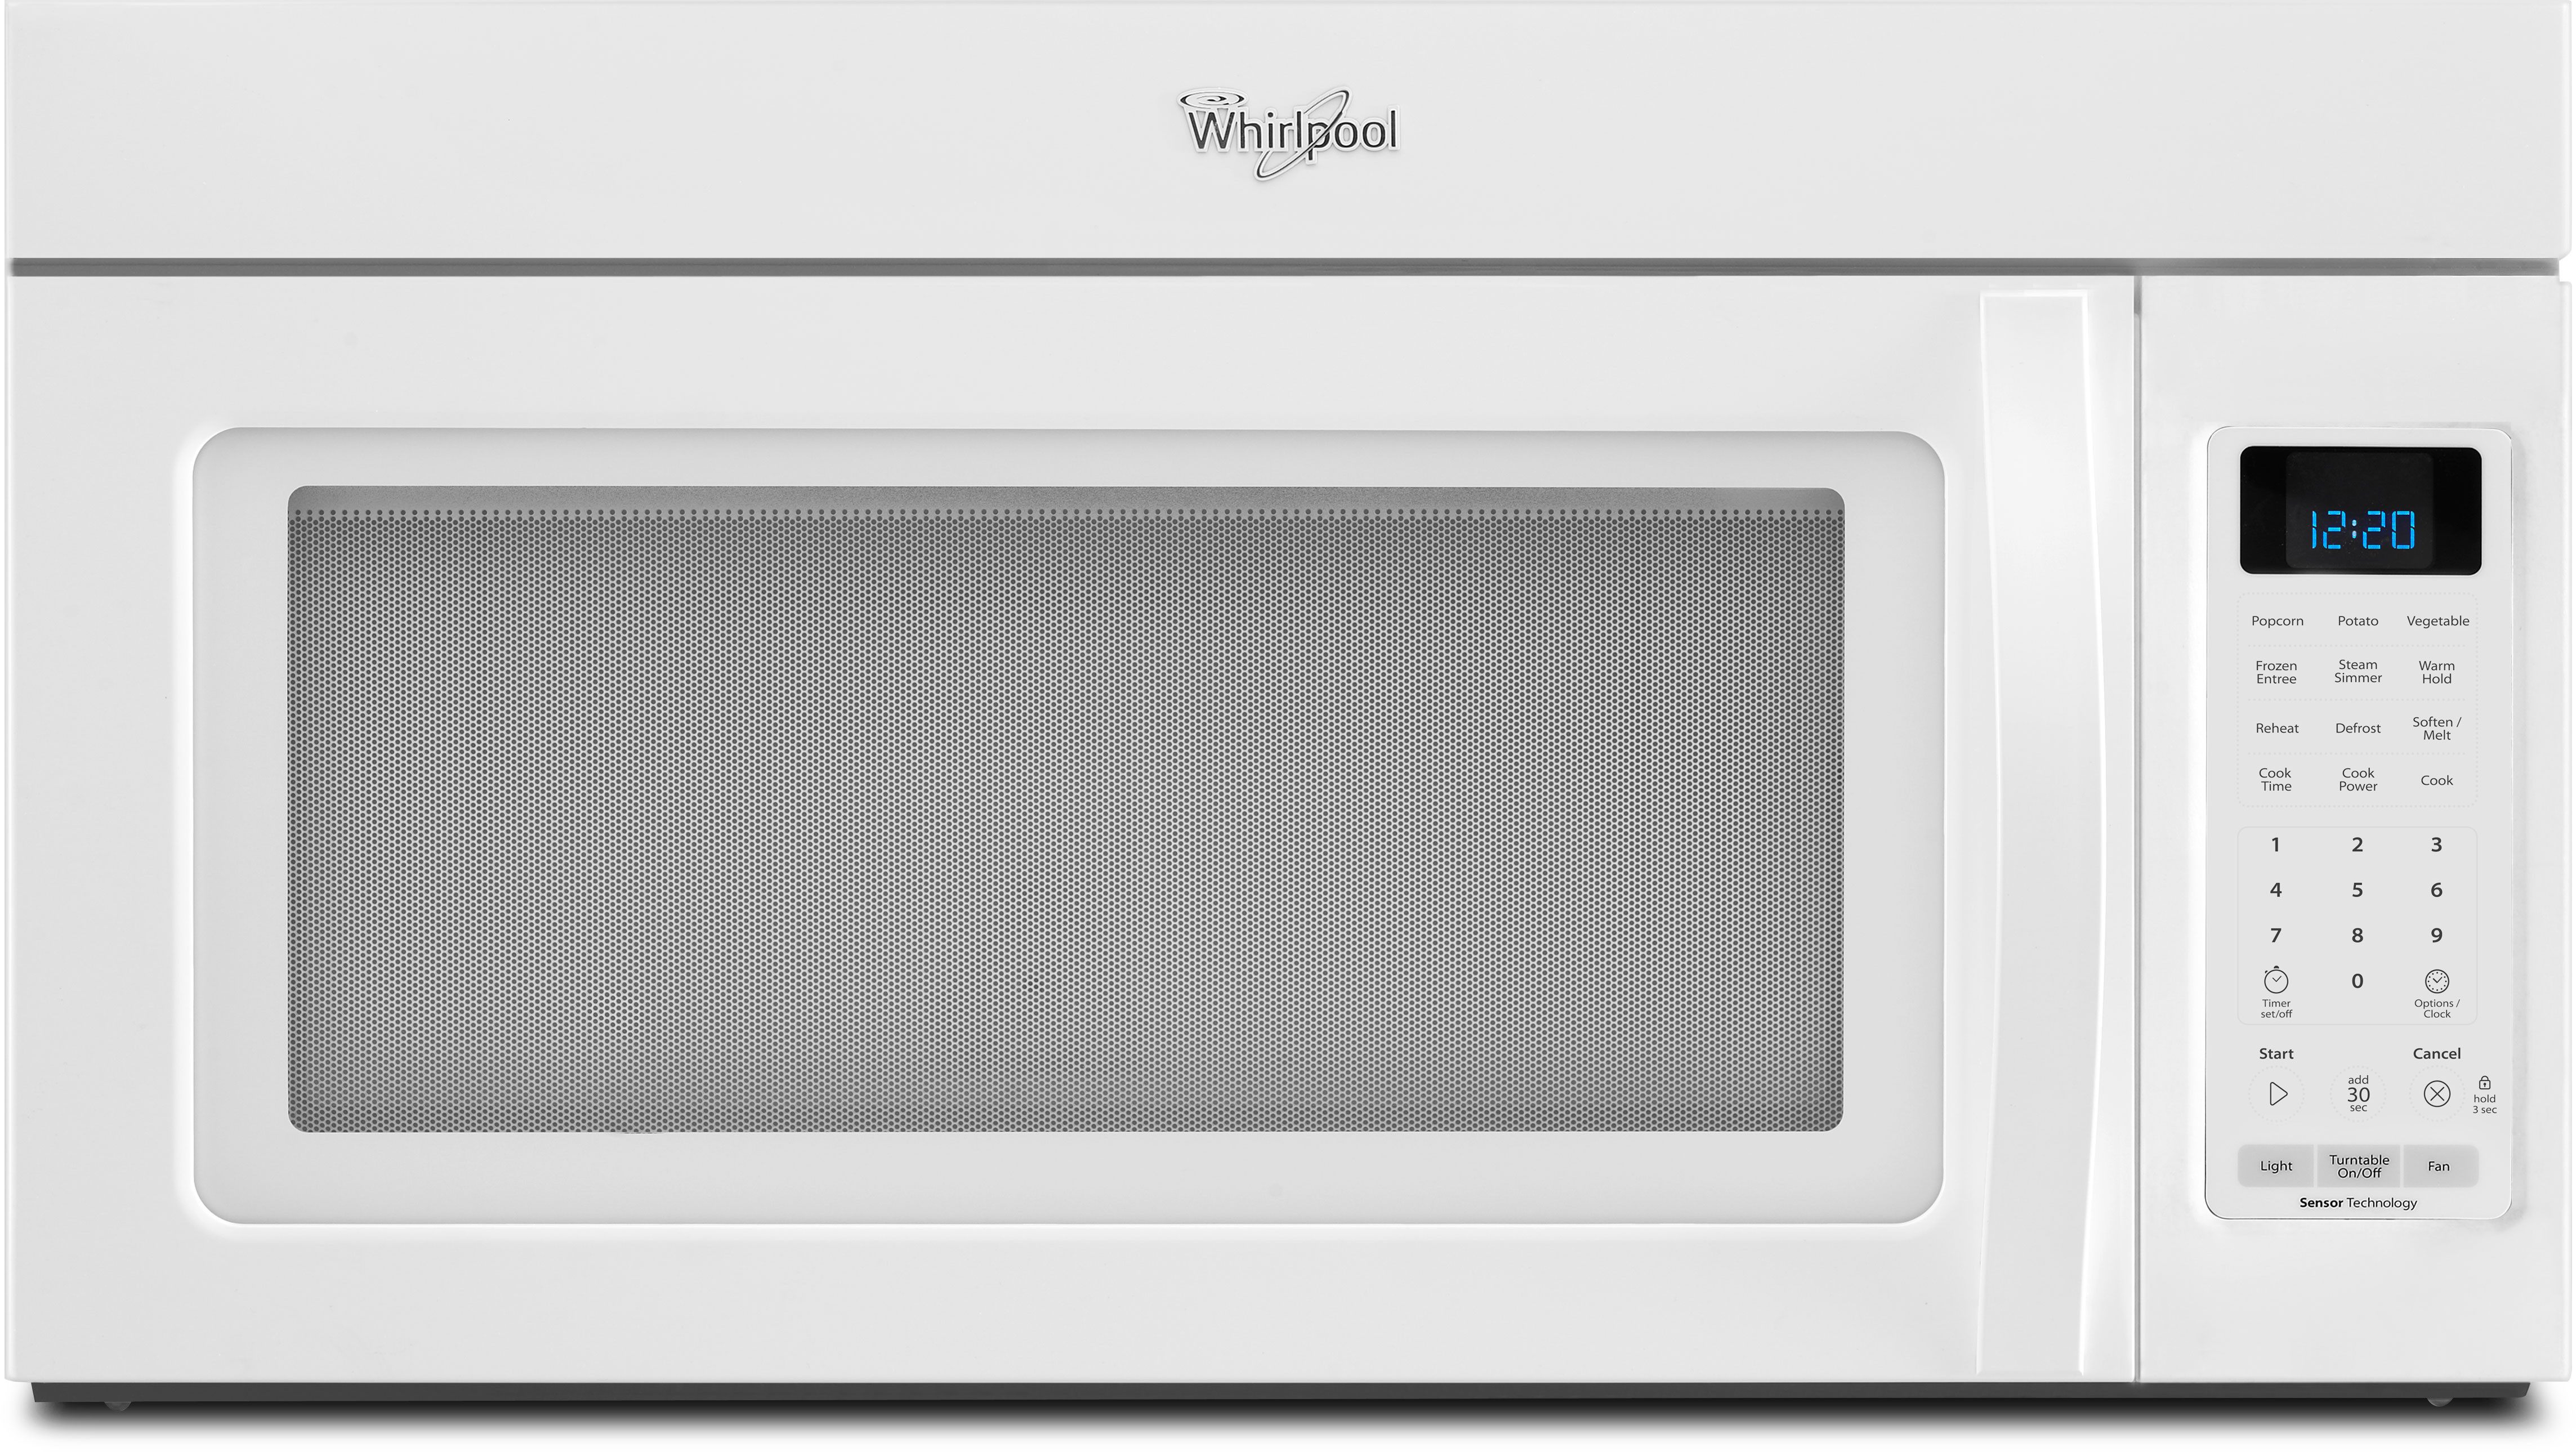 Whirlpool white ice over the range microwave - Whirlpool White Ice Over The Range Microwave 50